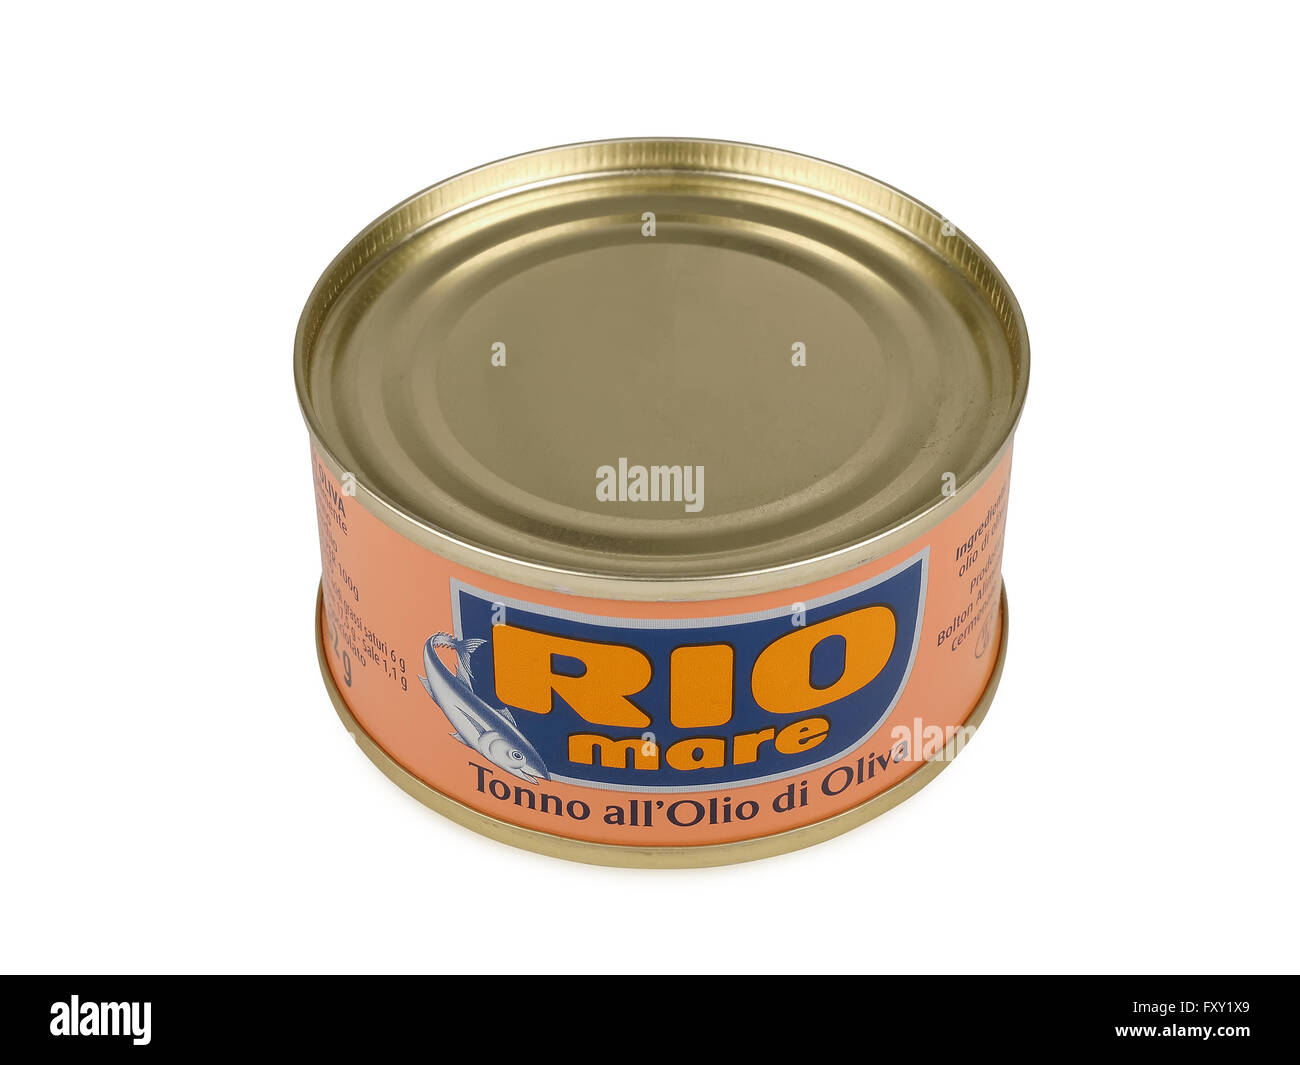 Can of Rio Mare brand tuna in olive oil. Rio Mare is manufactured by Bolton Group. - Stock Image